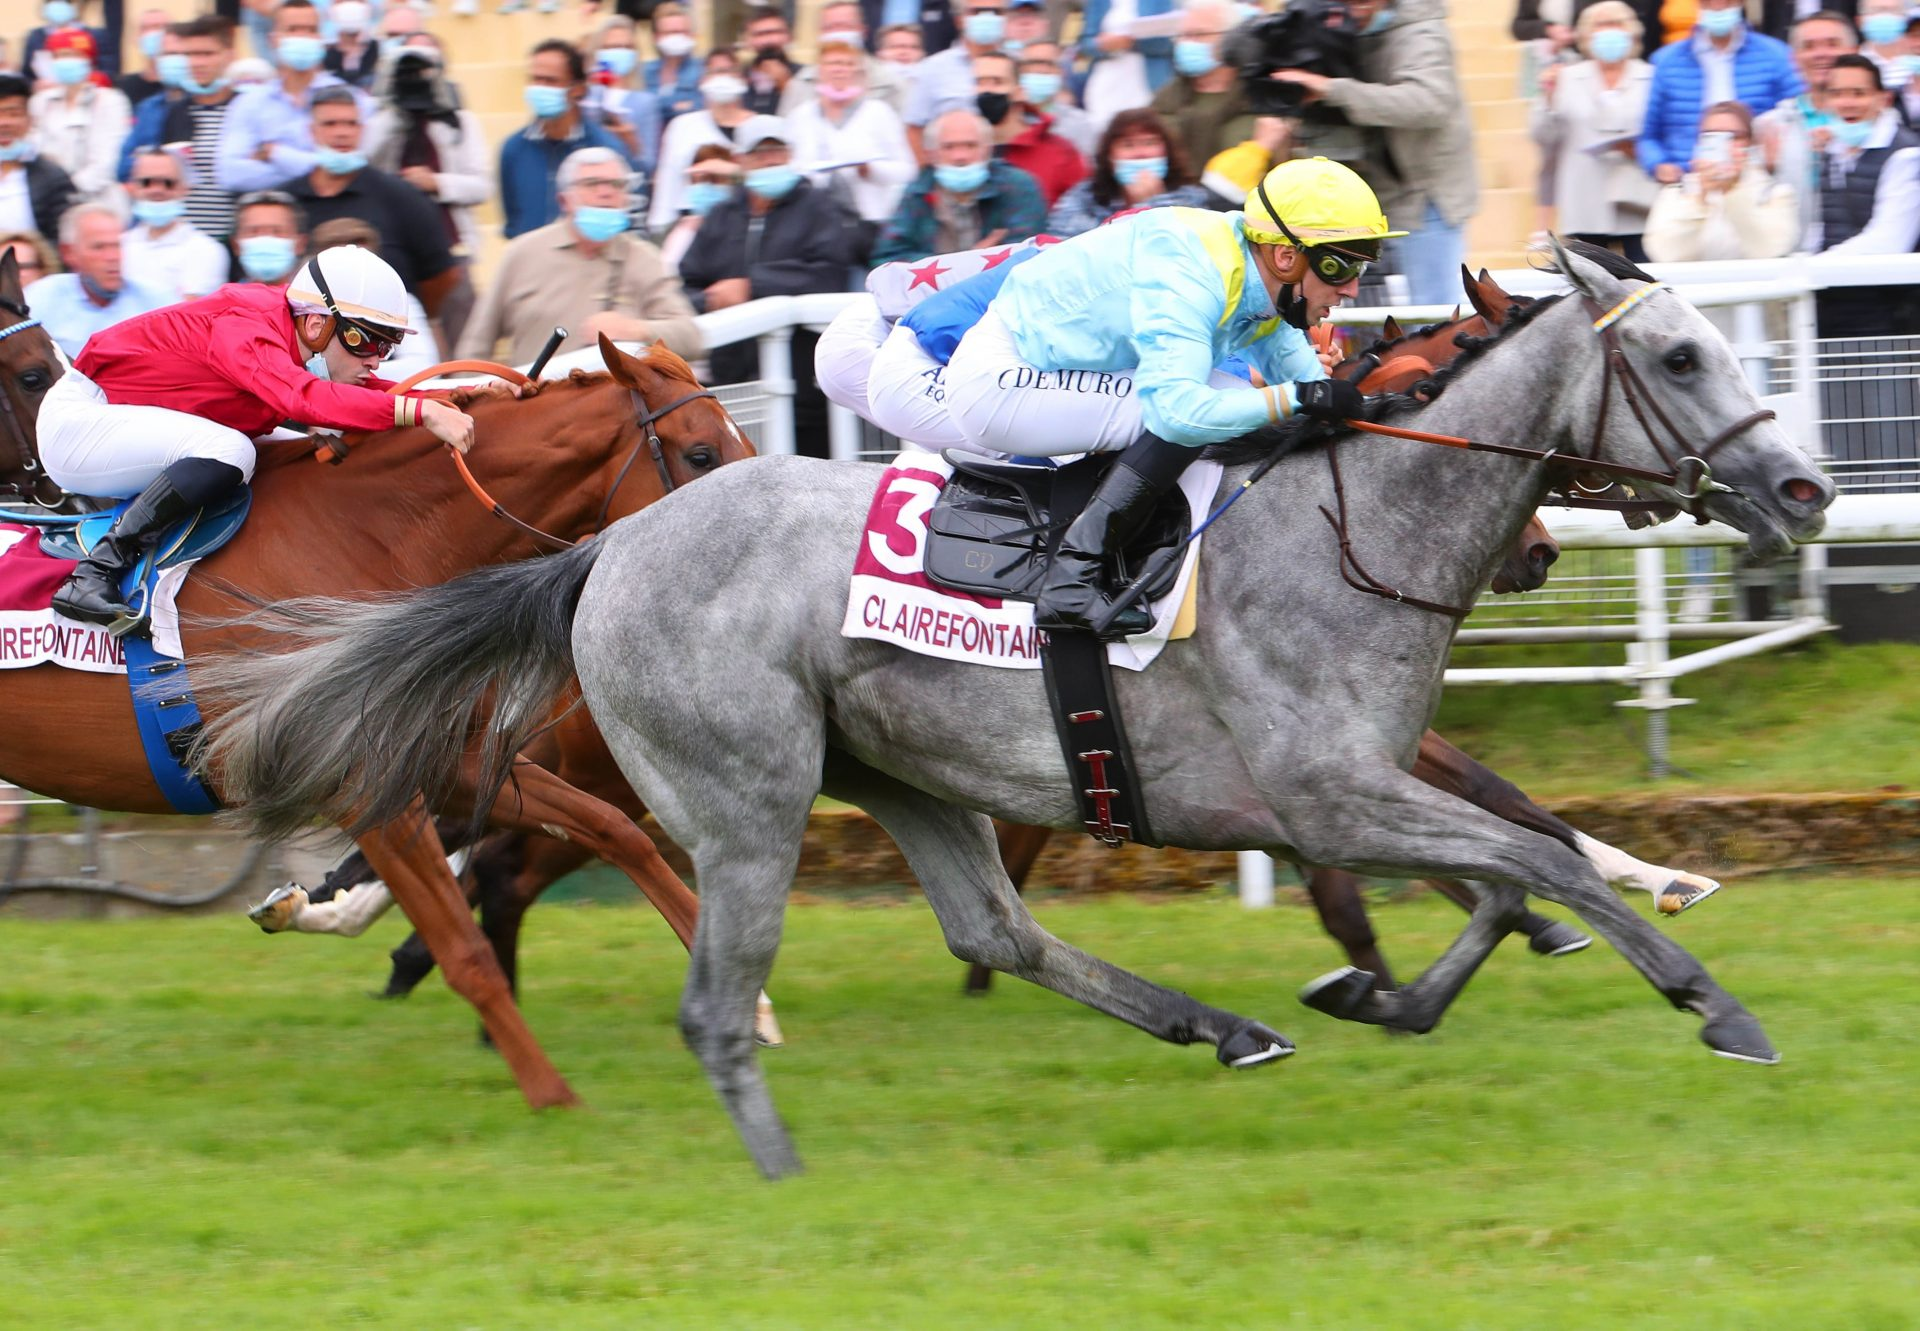 Silver Lining (Caravaggio) Winning At Clairefontaine